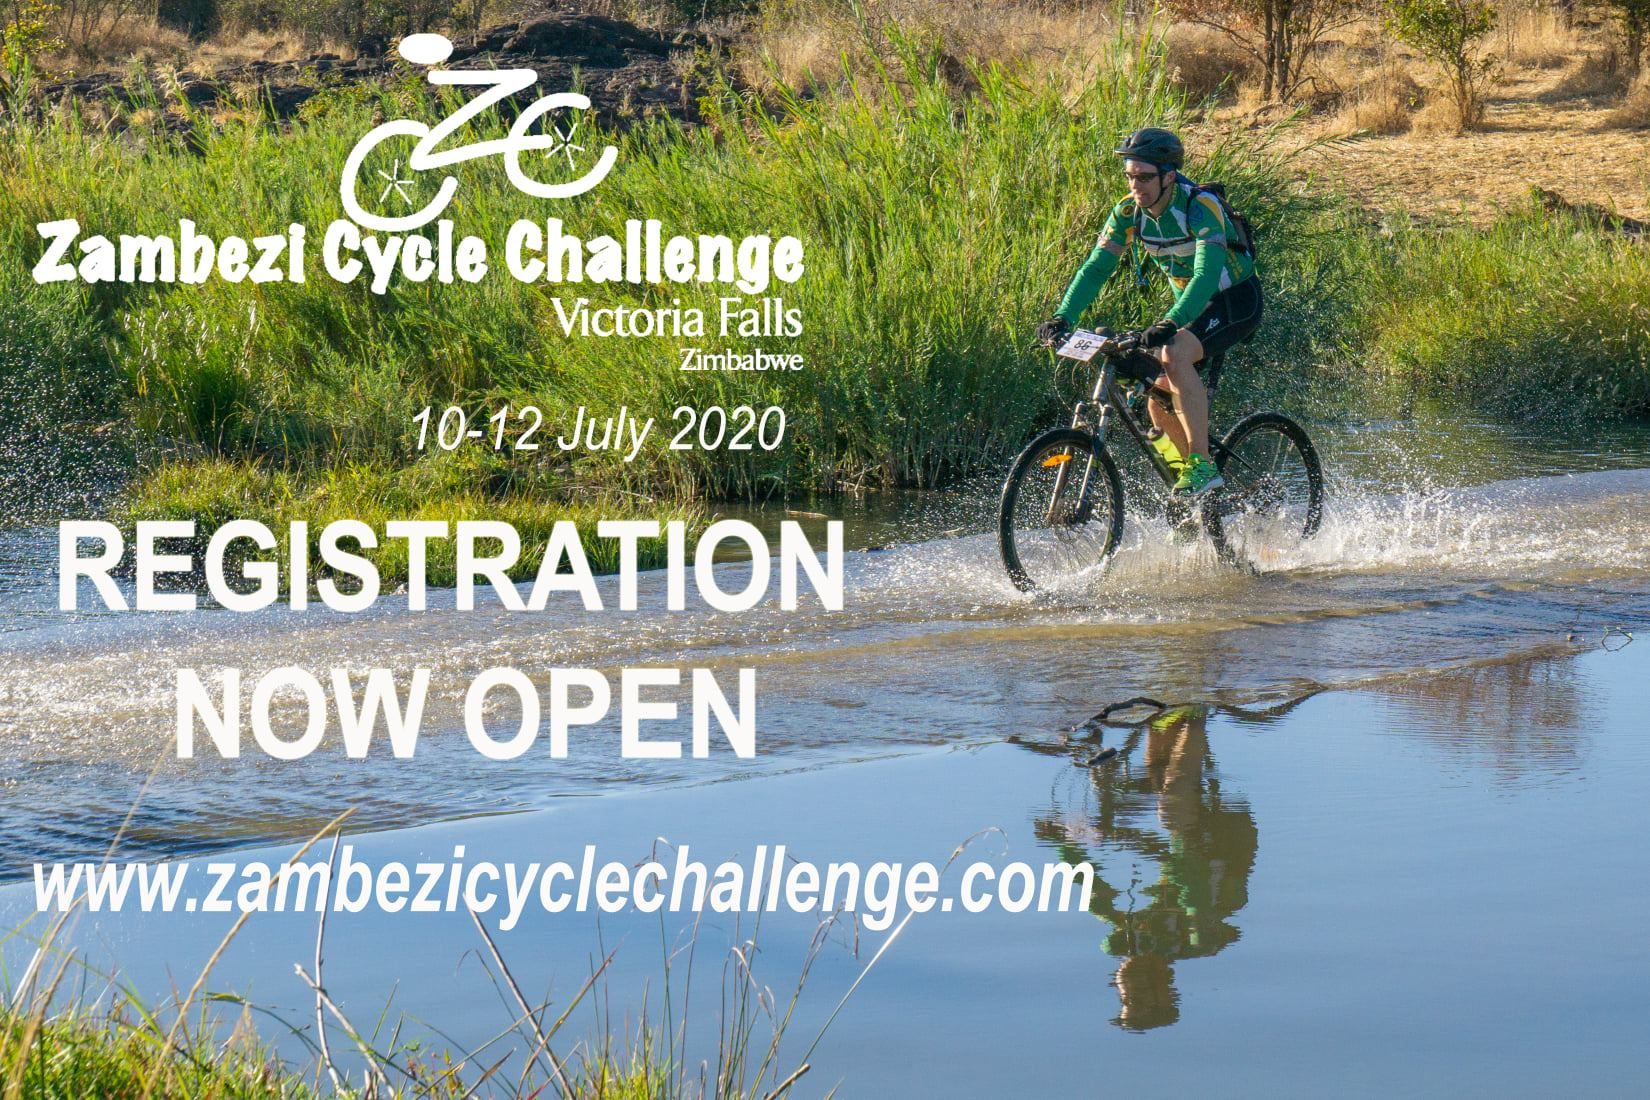 Zambezi Cycle Challenge 2020